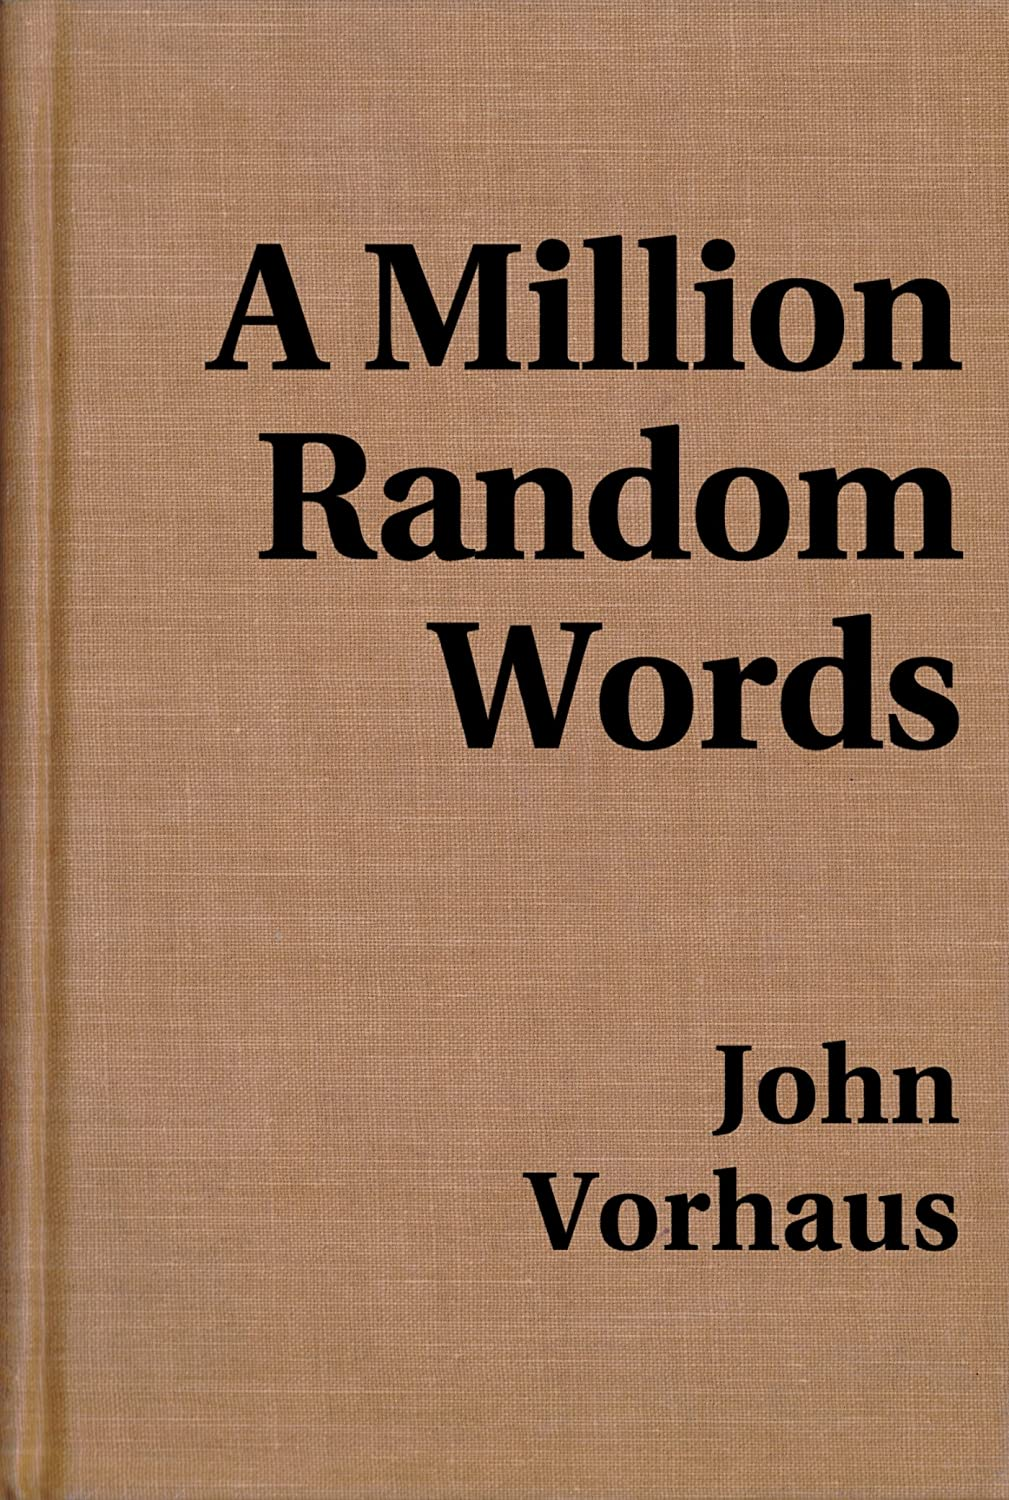 A Million Random Words book cover